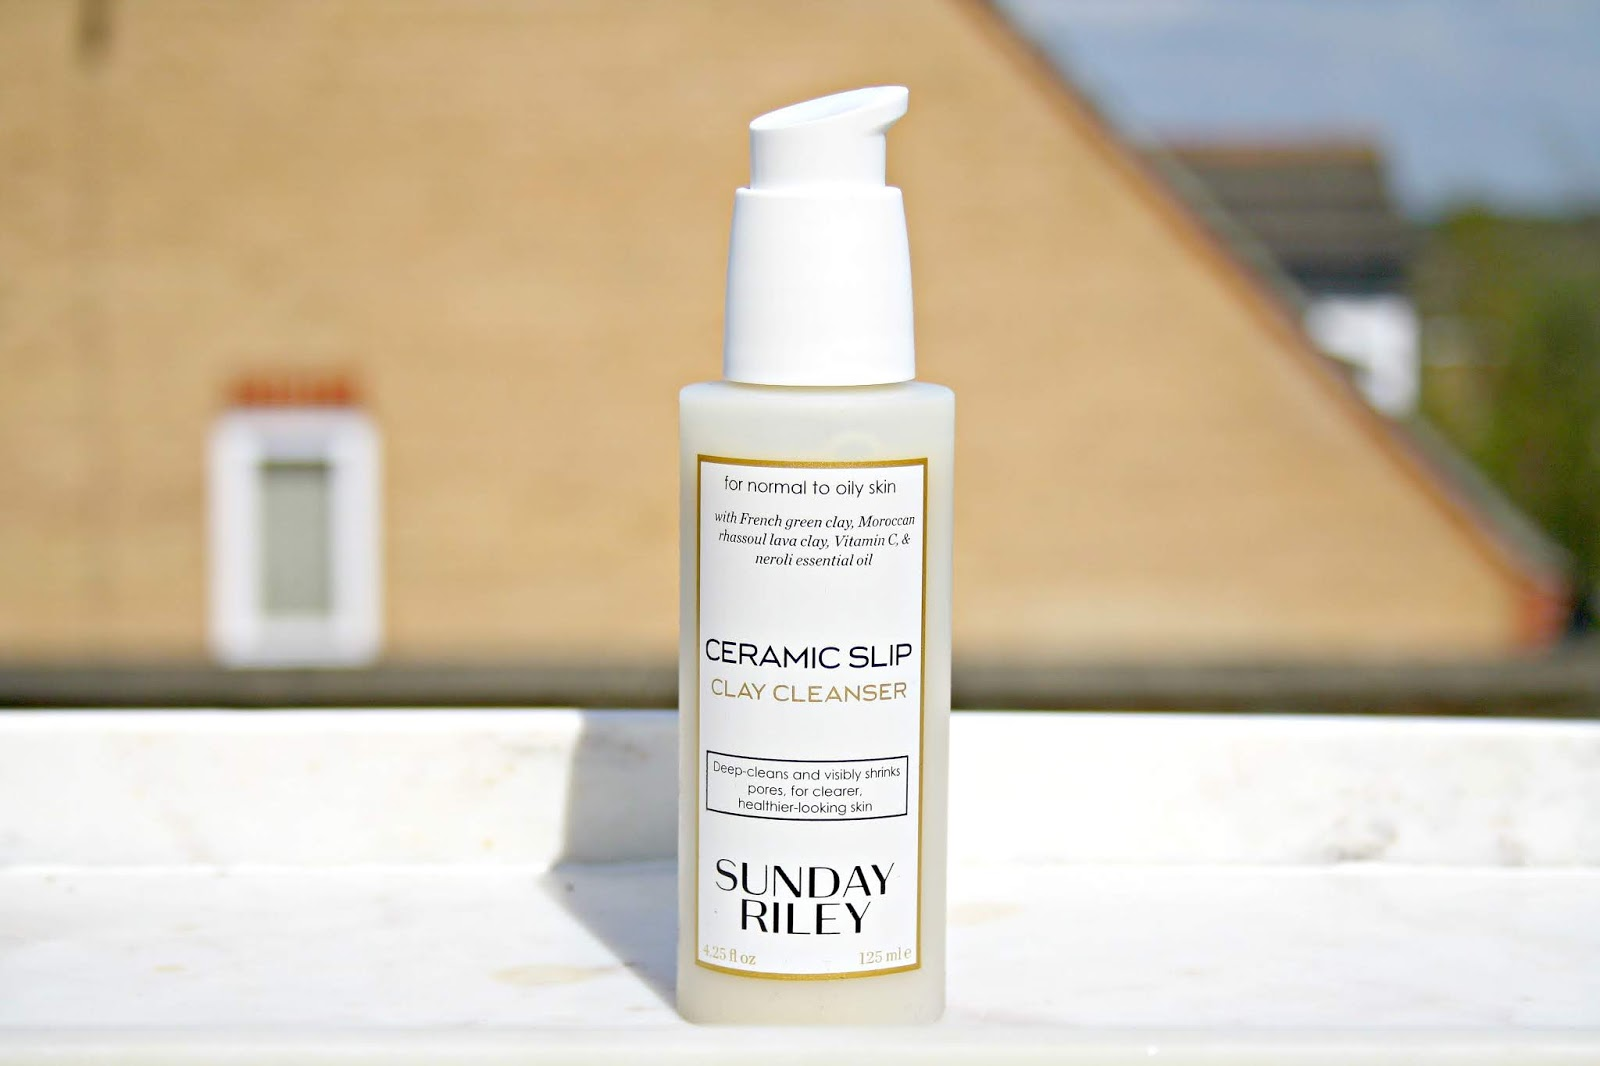 Sunday Riley Ceramic Slip Clay Cleanser Beauty Queen Uk Bloglovin Curcuma Rmulsion Blackcurrant Flavour Designed To Be Used Ideally On Normal Oily Skin Which I Kind Of Have With Combination Leaves Me This Cleaner Is Described As Being Deep